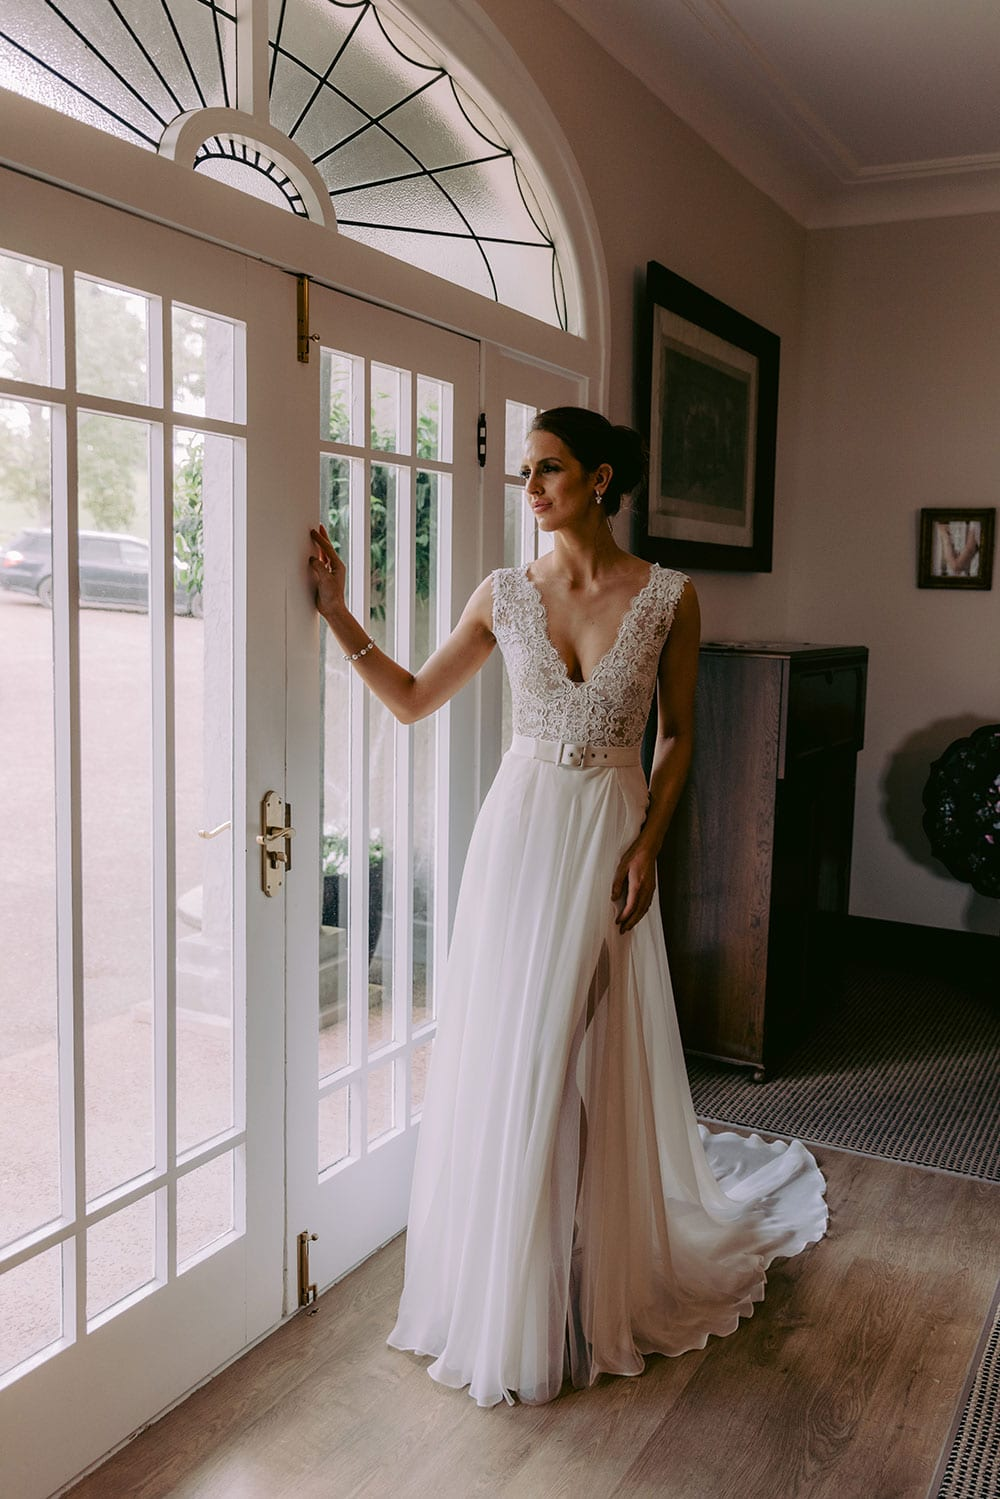 Mila Wedding gown from Vinka Design - Wedding dress with guipure lace with a deep V-shaped neckline both front and back. Skirt in bridal crepe, which gently sculpts and flatters the wearer's hips before falling into a small train. Model waring gown in brightly lit vintage room.